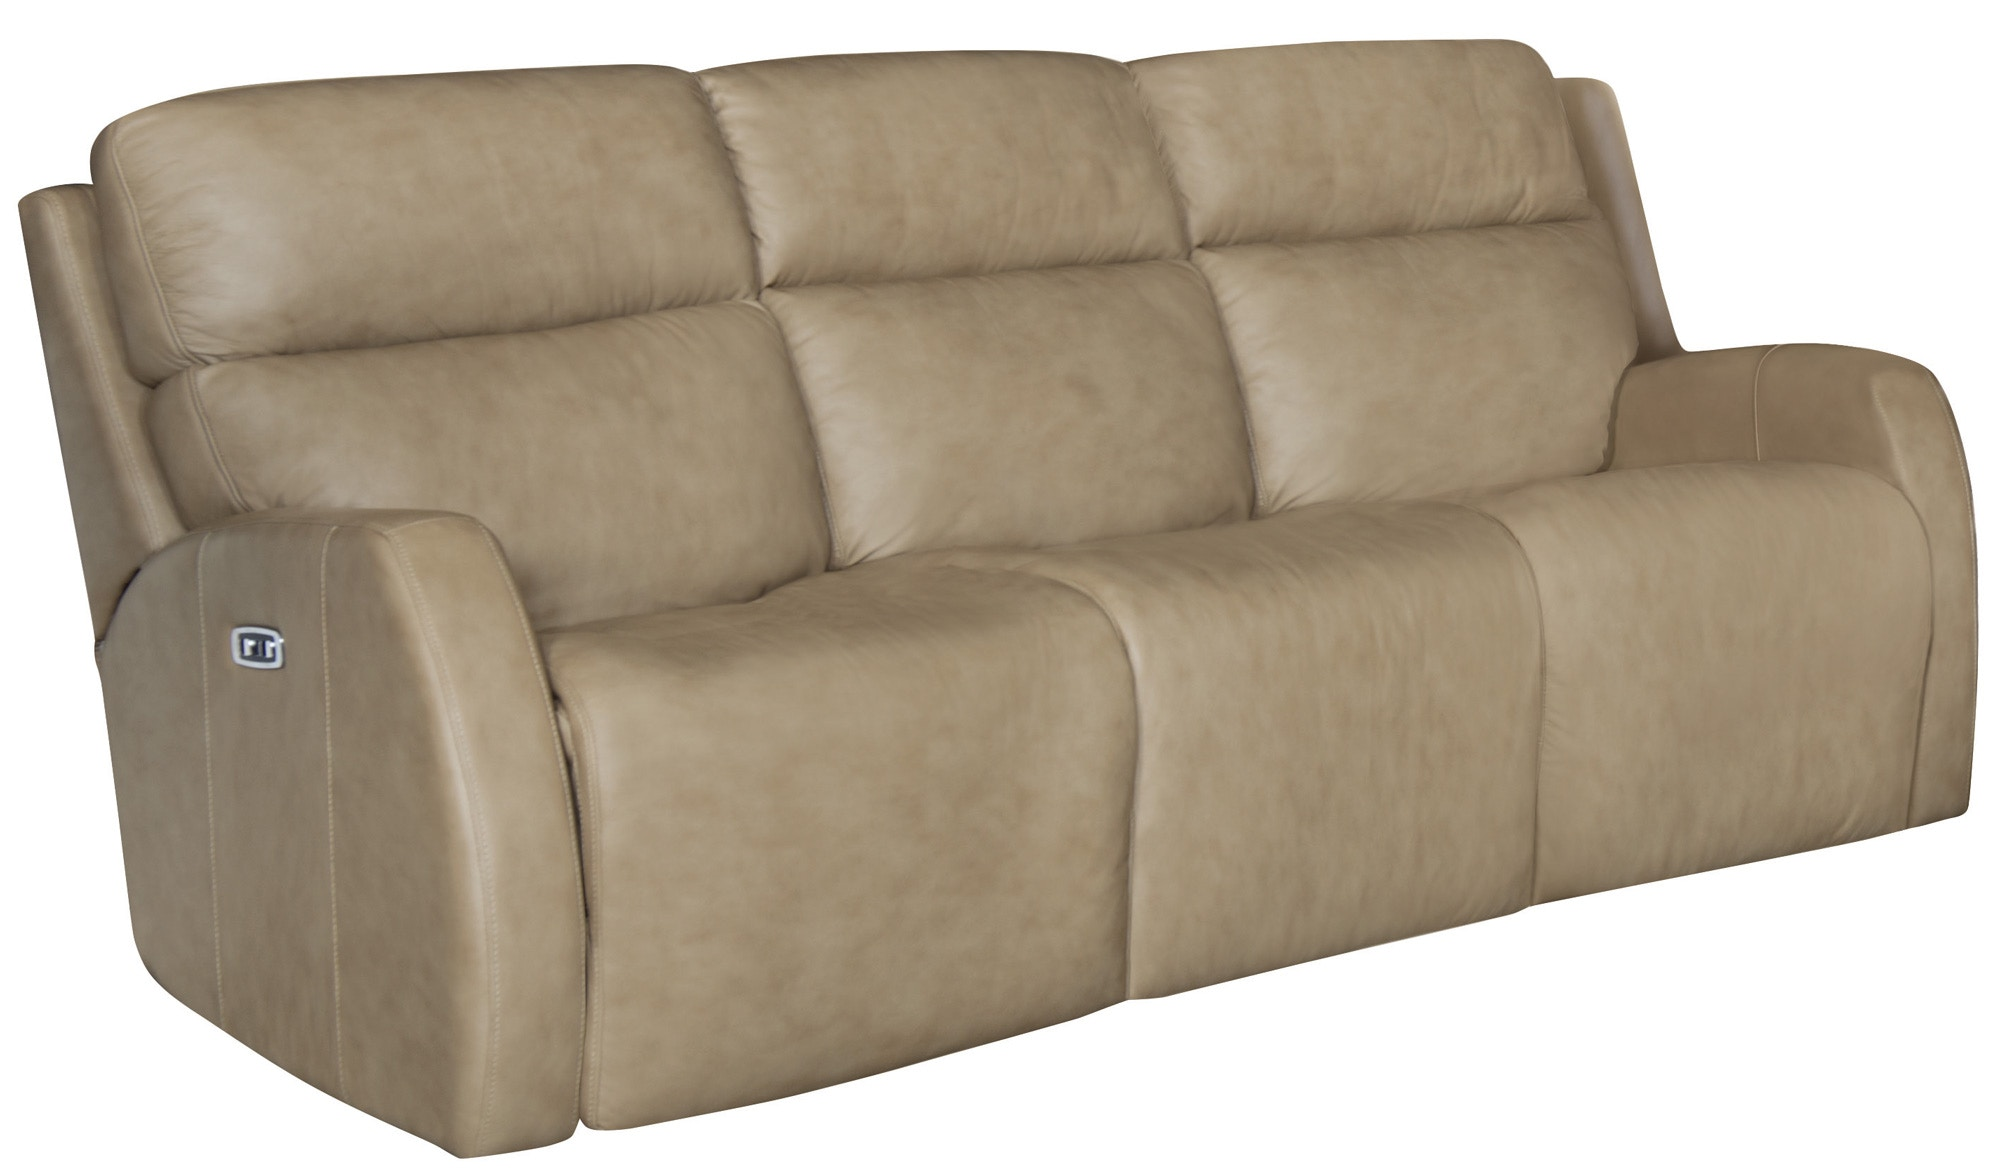 Bernhardt Furniture Aaron Power Motion Sofa Bernhardt Furniture 897RL